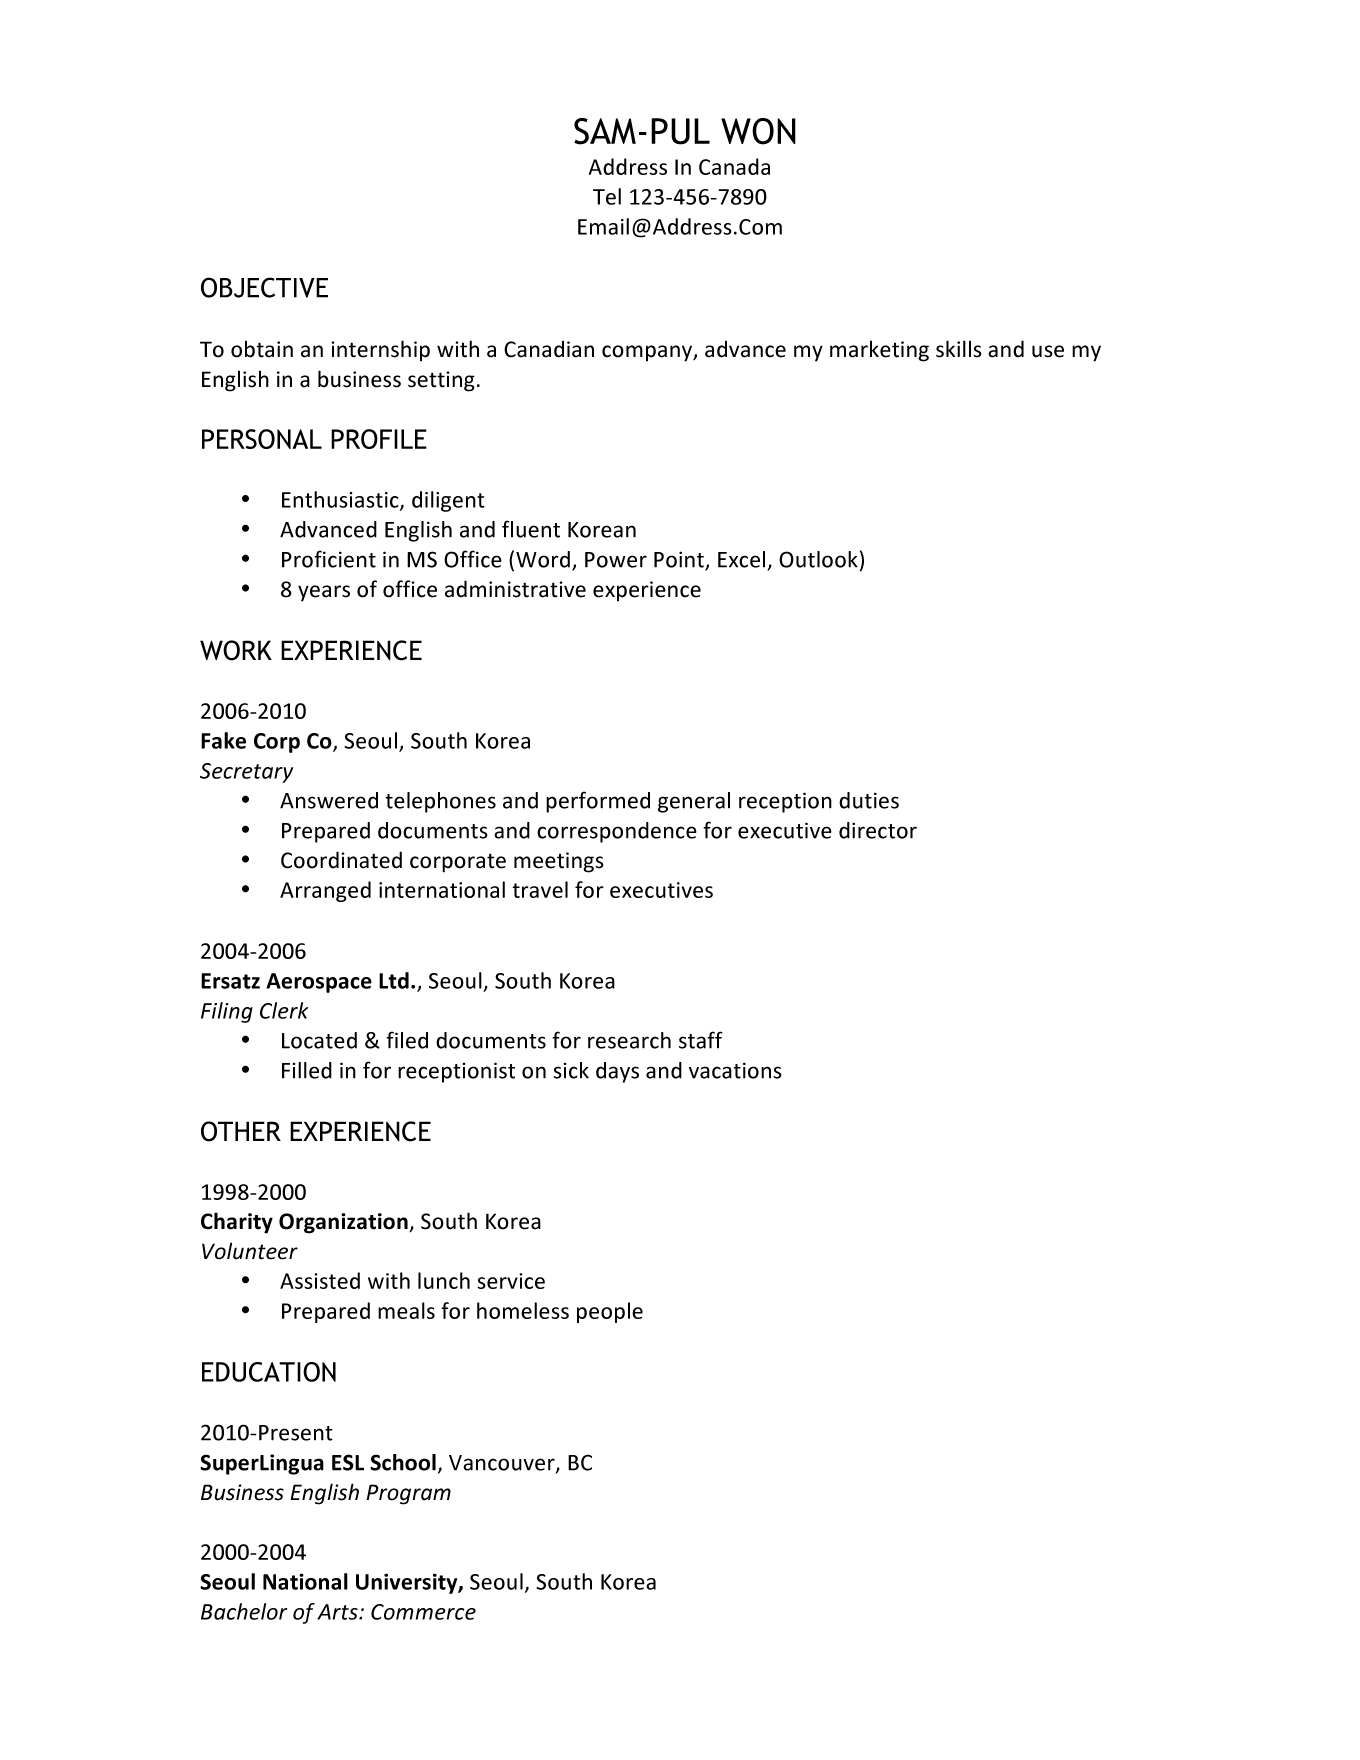 Sample Resume For Working Abroad How To Write A Student Cv Search Results Calendar 2015